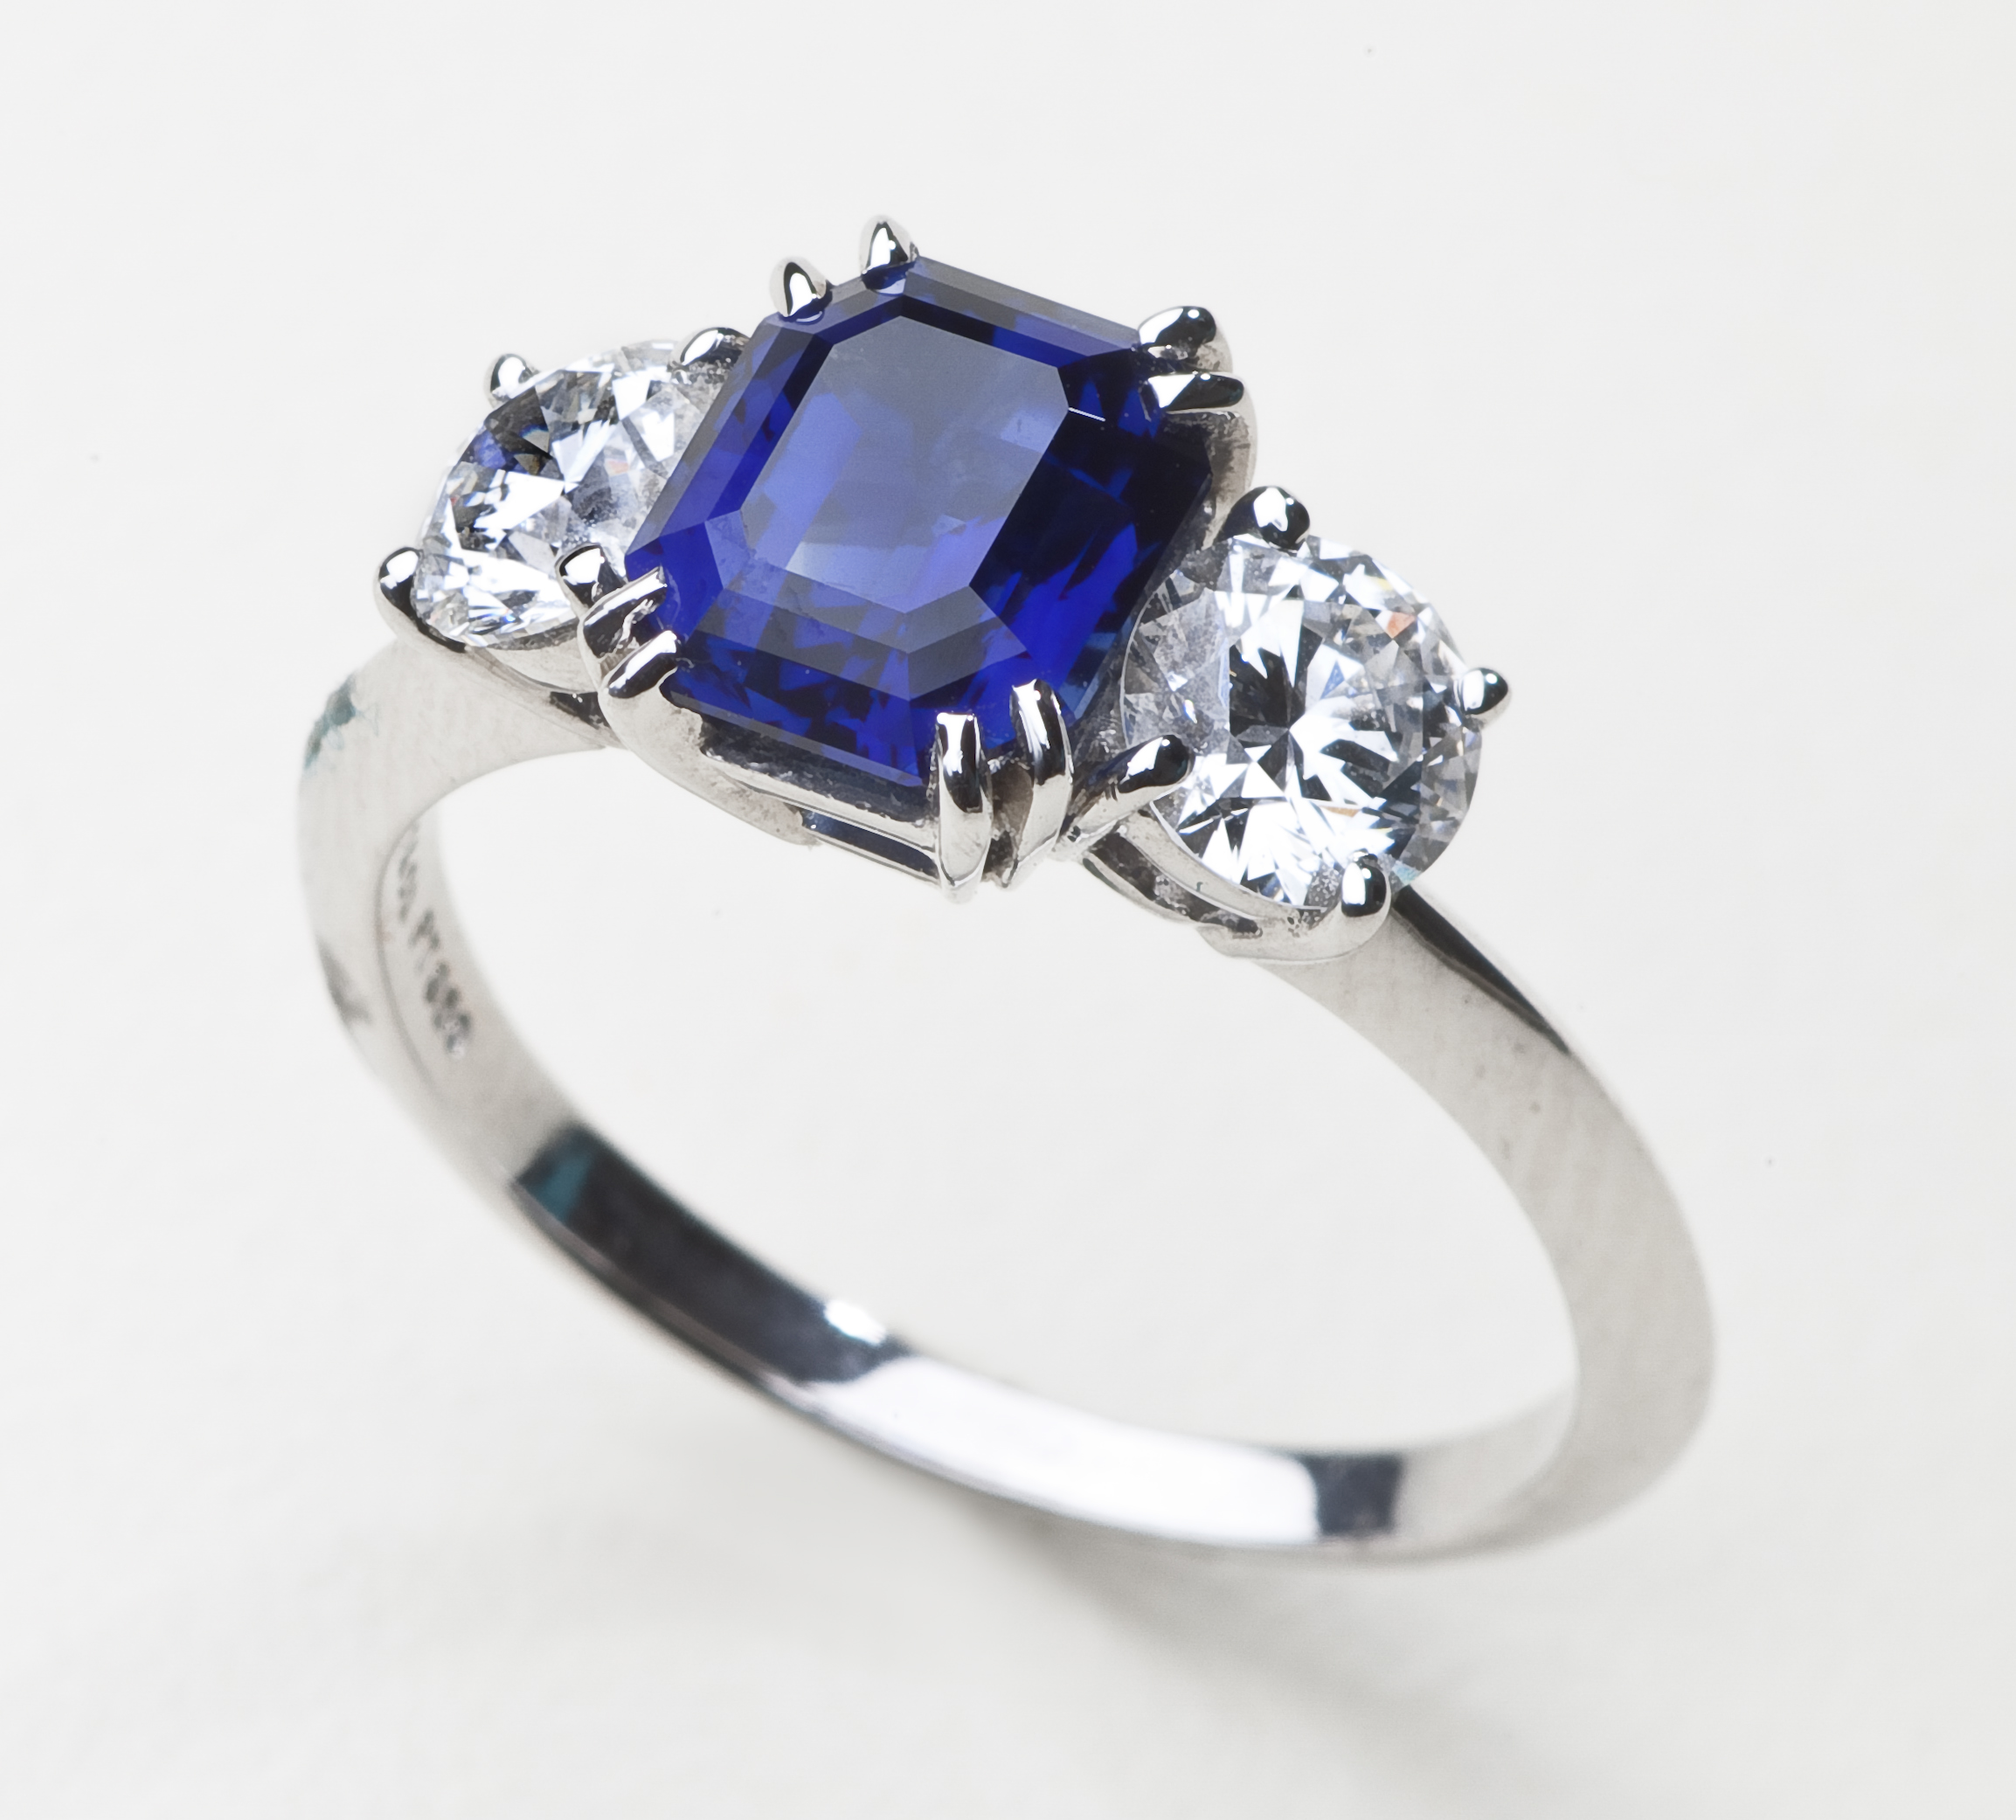 diamond brands found ring sapphire appraisal auction schlumberger tiffany and en valuation co results